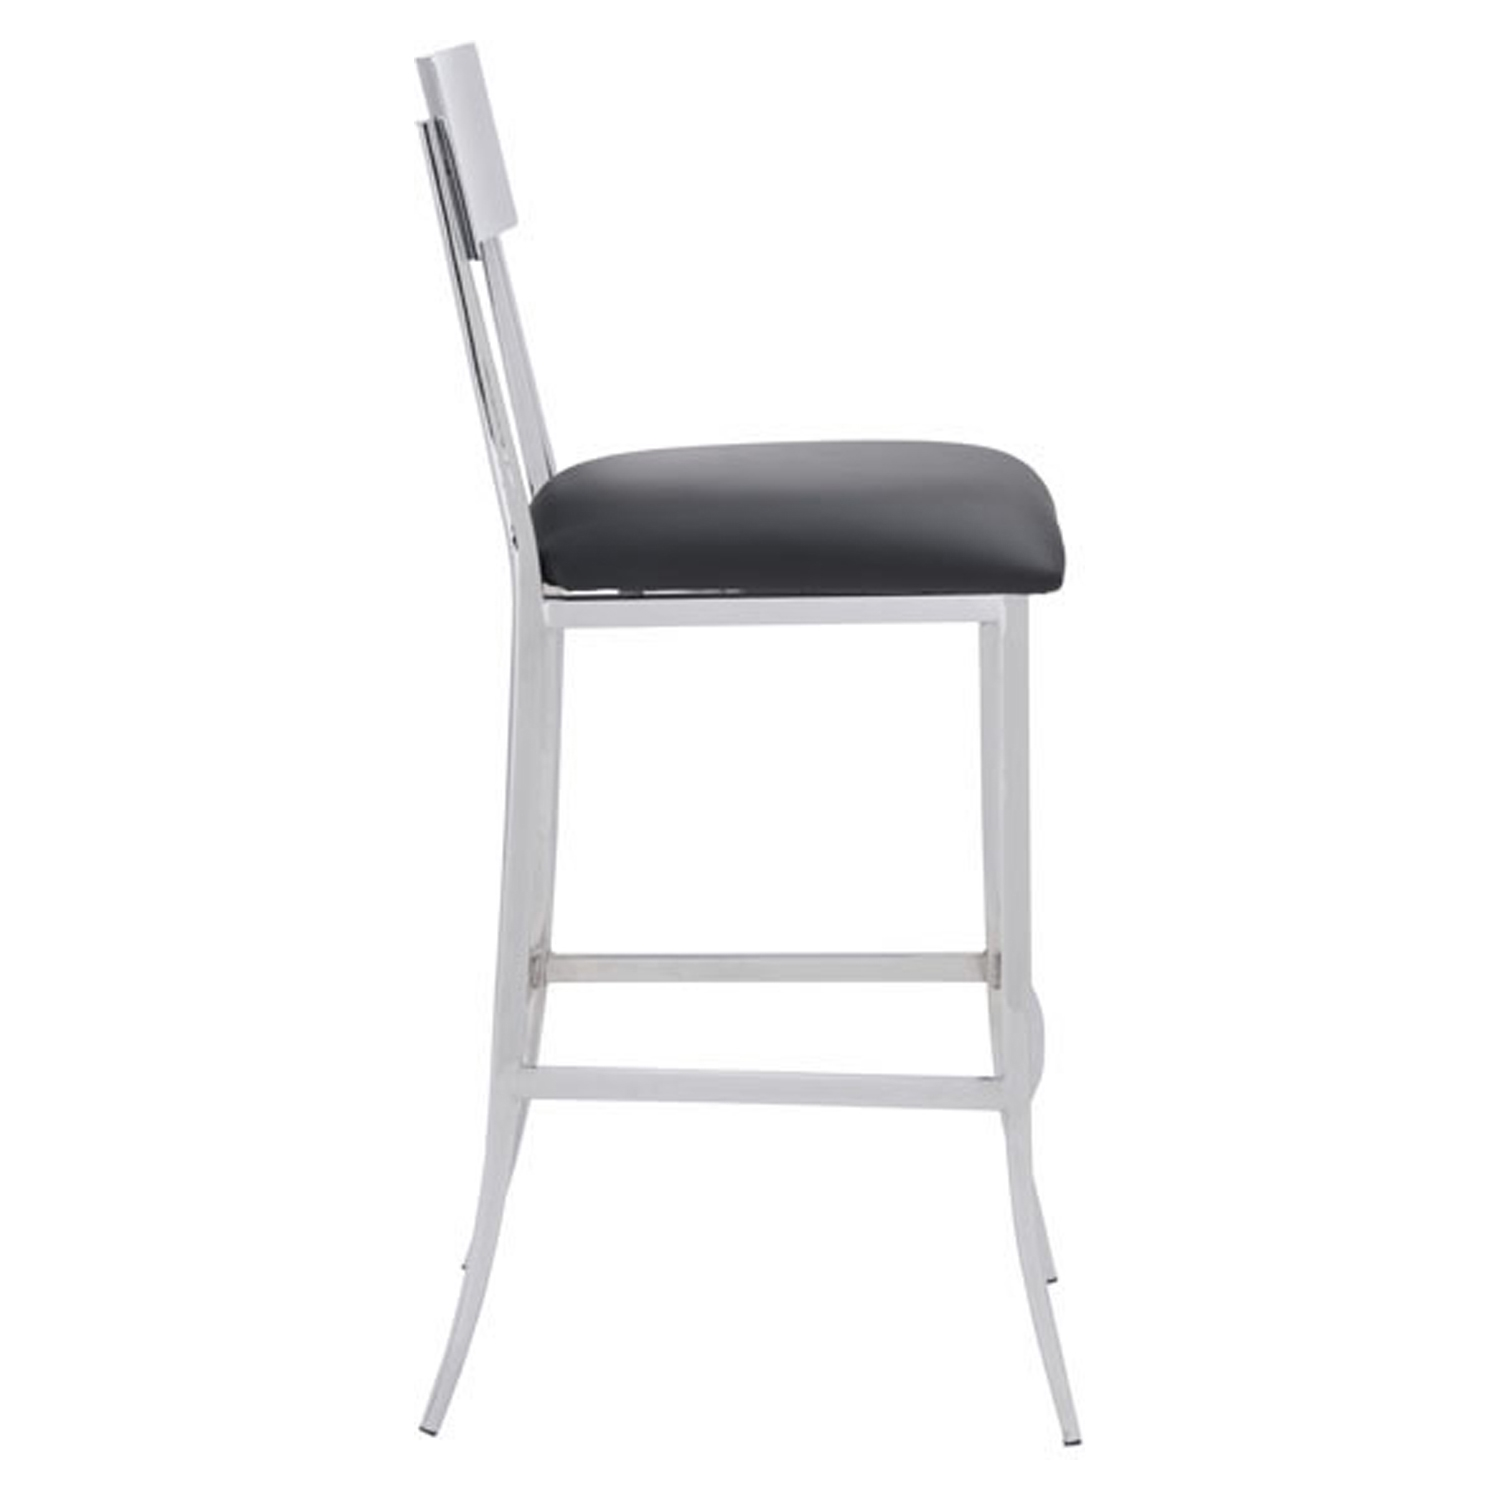 Mach Bar Chair - Black - ZM-100355